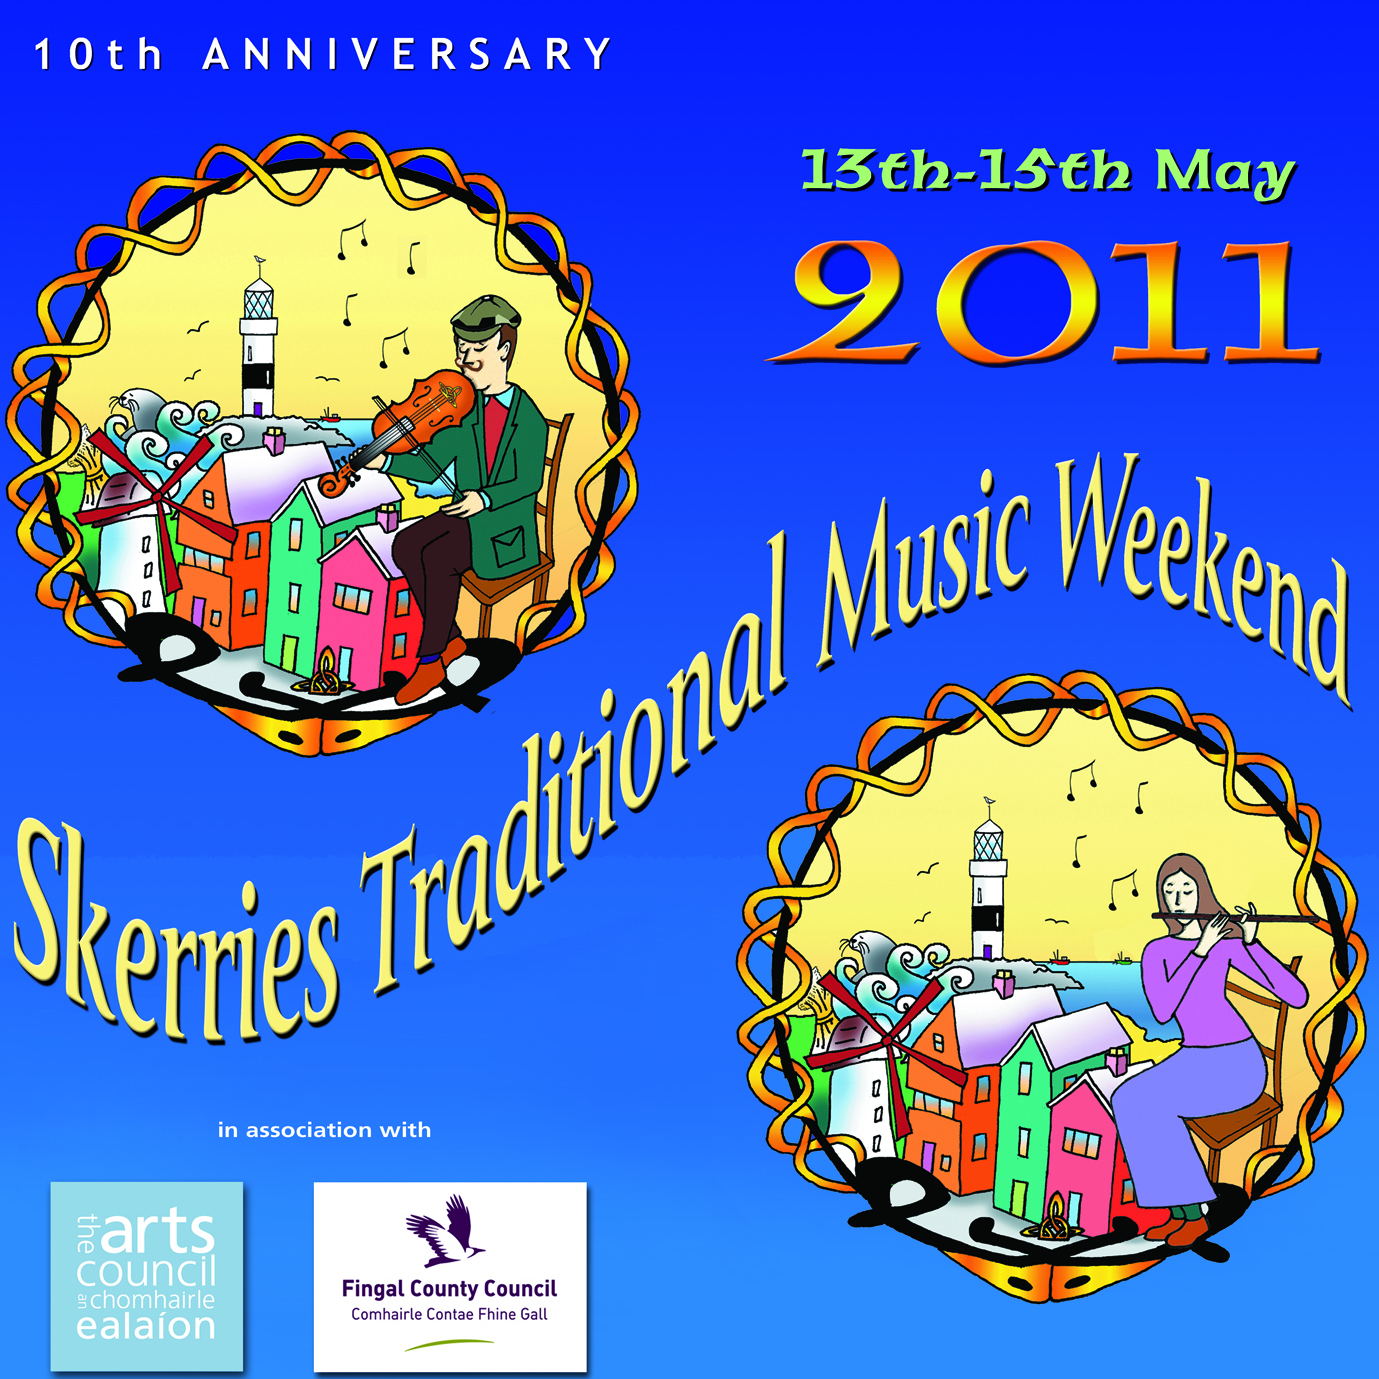 Skerries Trad Music Weekend